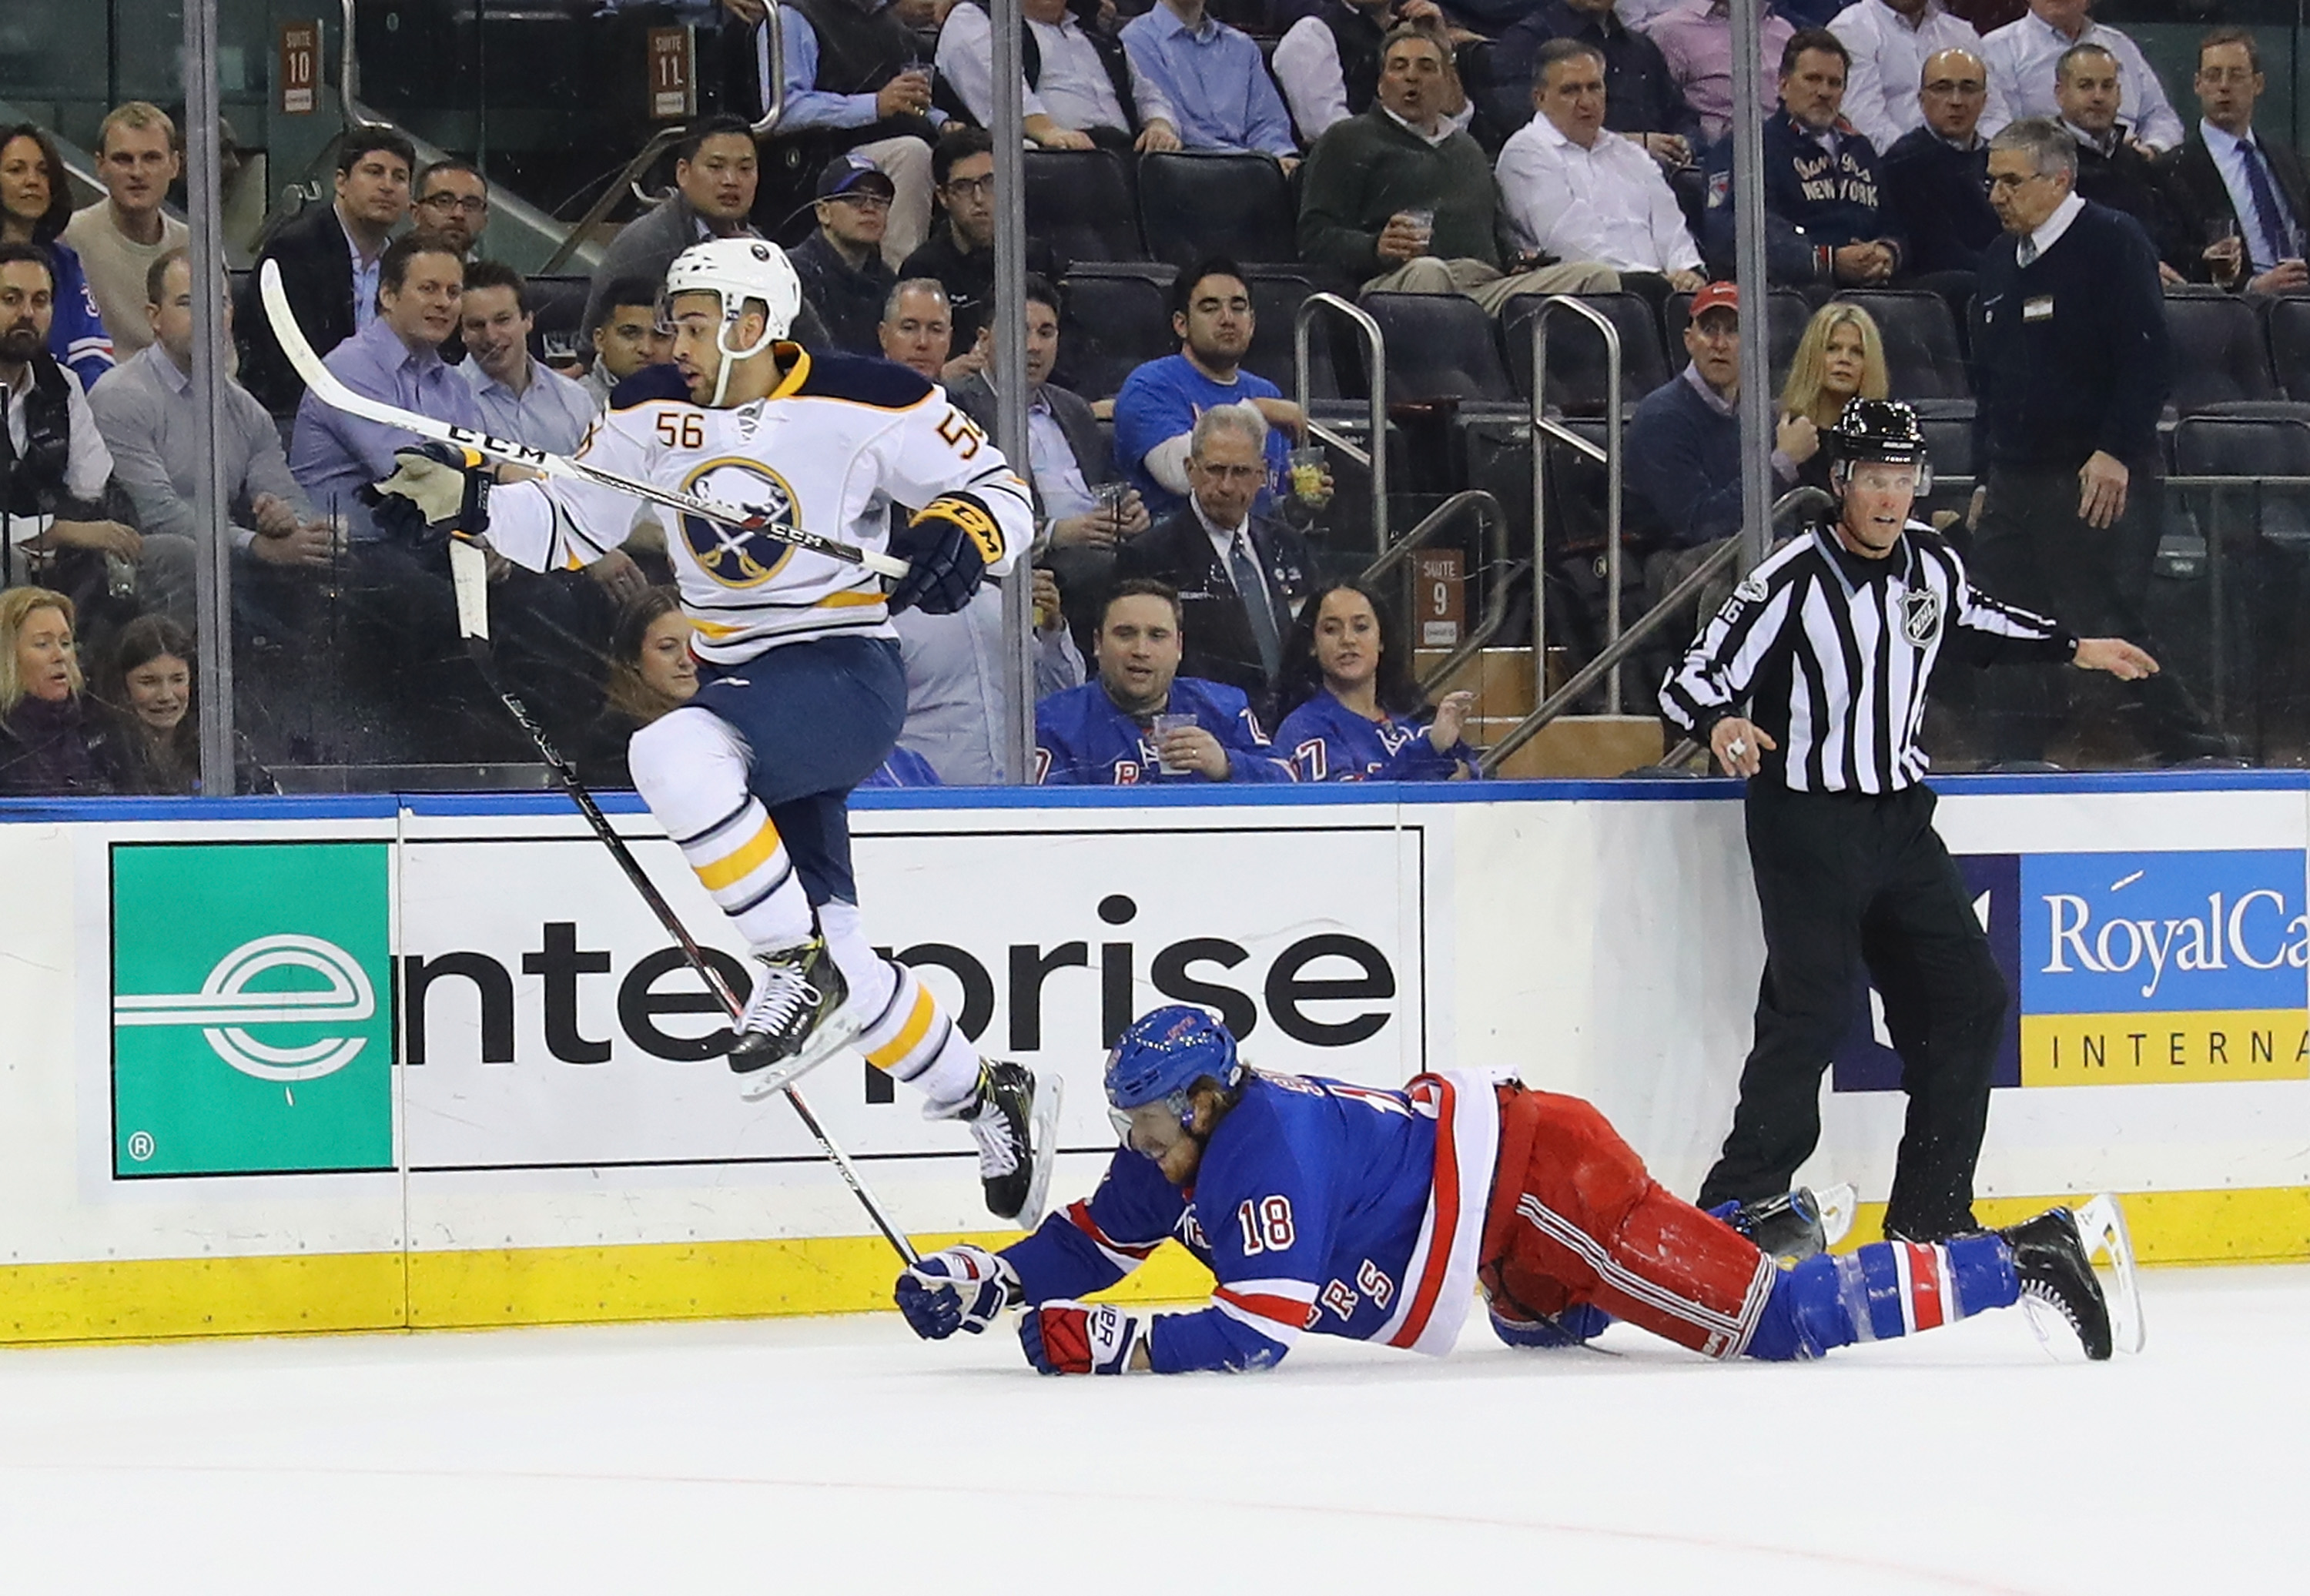 Justin Bailey has been using his speed against the Rangers Marc Staal and other defenders. (Getty Images)